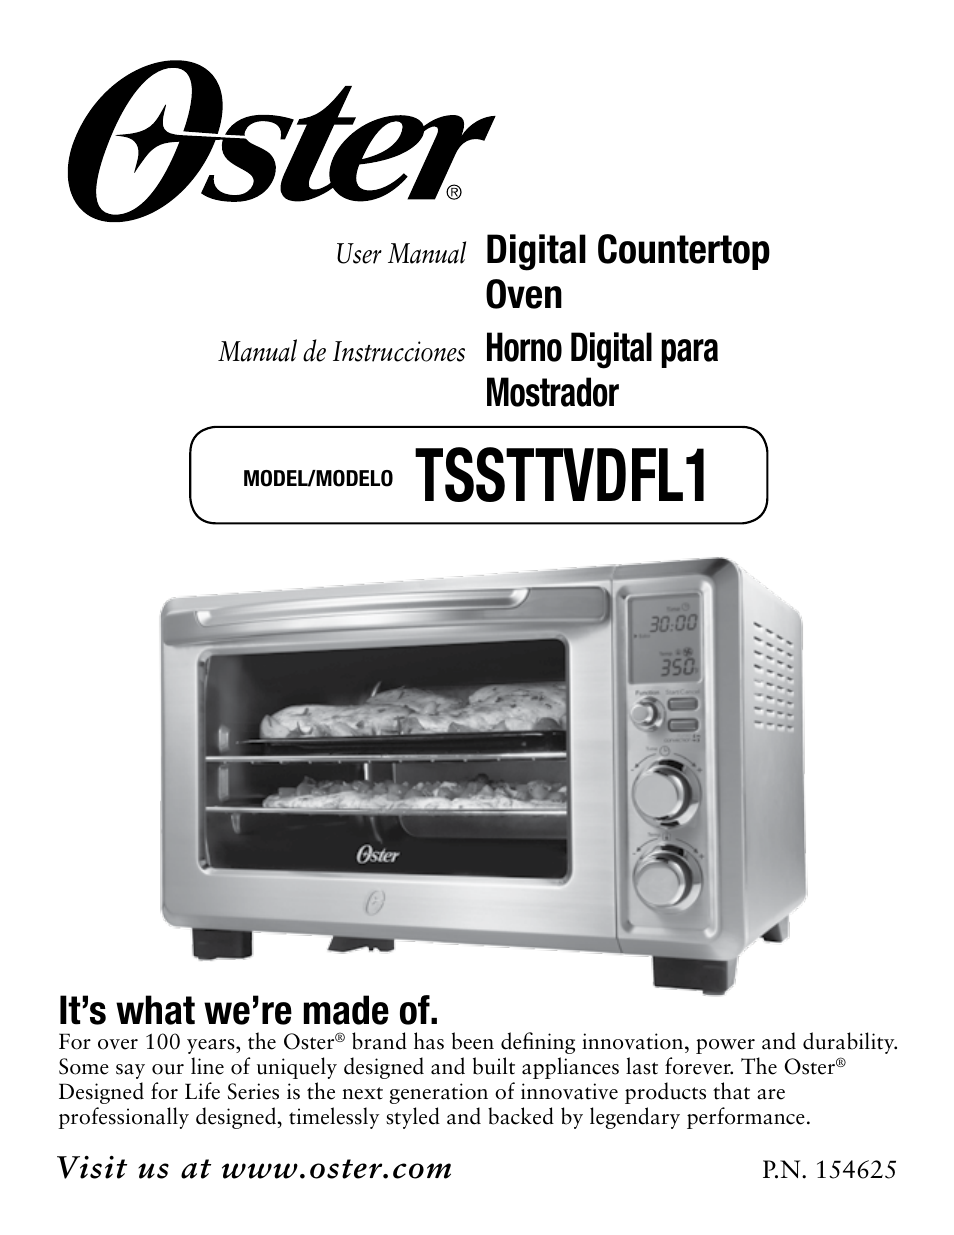 oster digital countertop tssttvdfl1 user manual 43 pages rh manualsdir com oster microwave oven manuals oster microwave owners manual